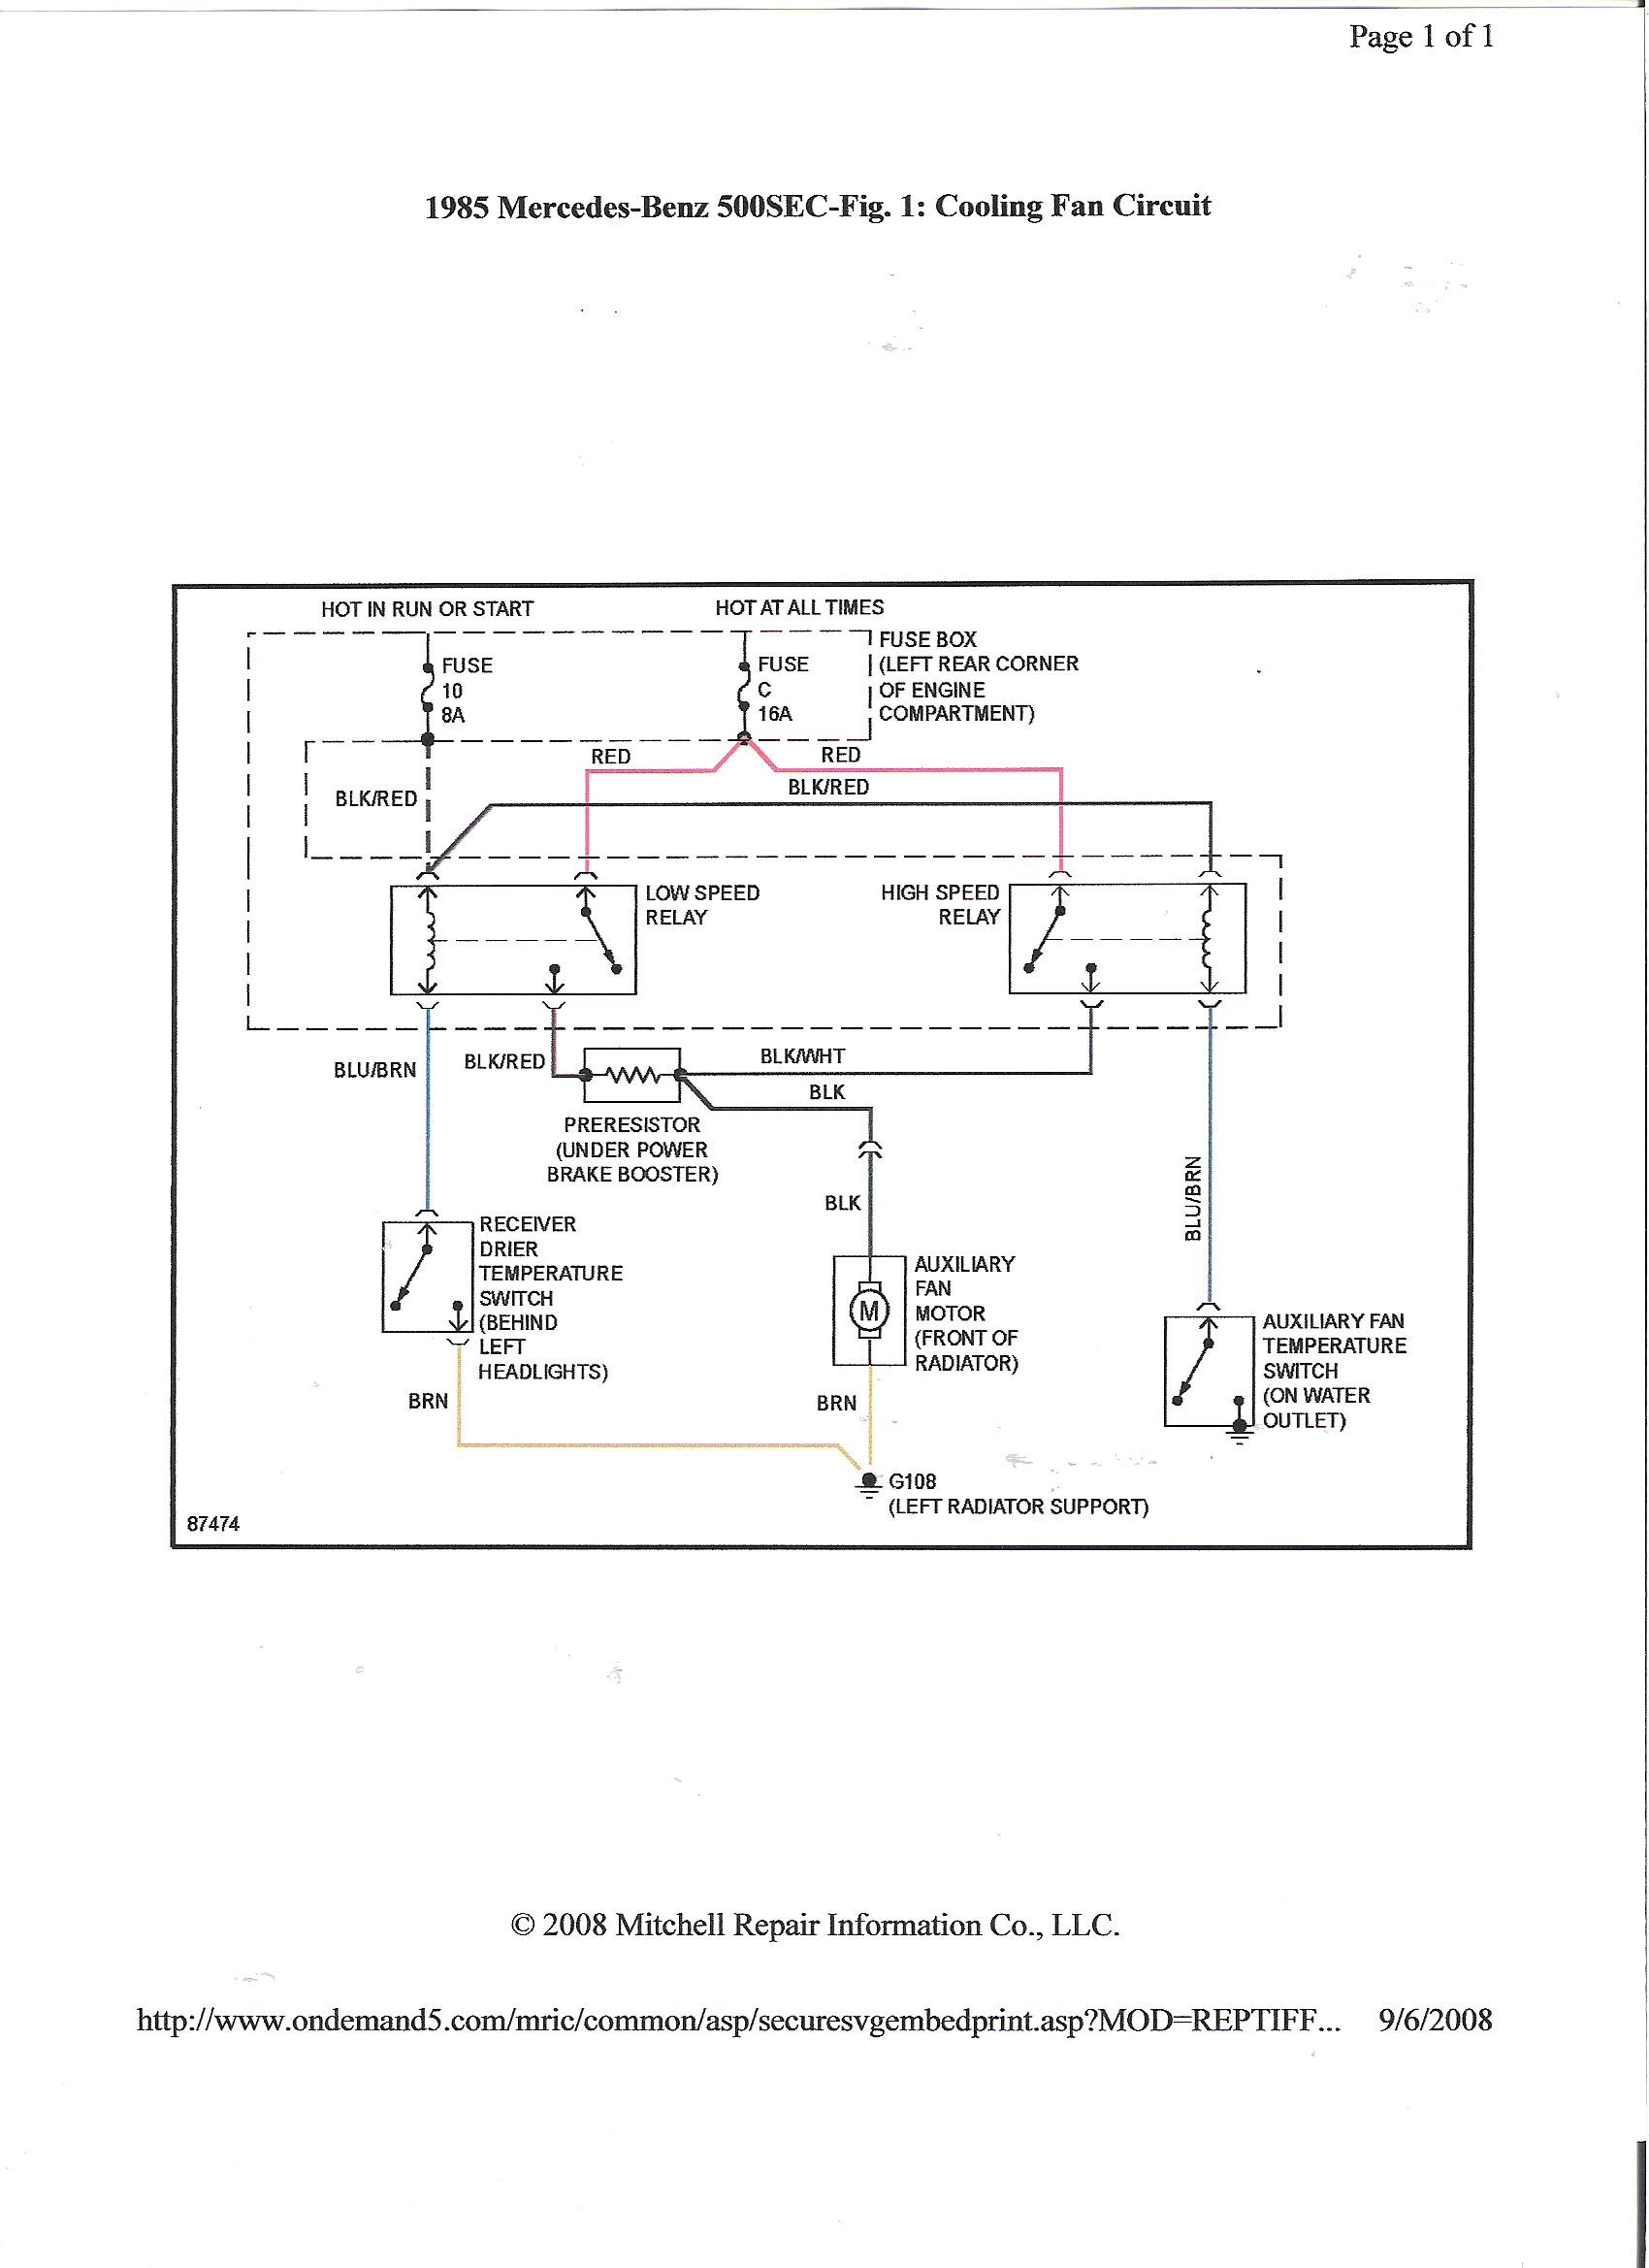 2008 09 06_125641_185_MBZ_5SEC_aux_fan_circuit_001 i purchased a 1985 500 sec from original owner 2 years ago the